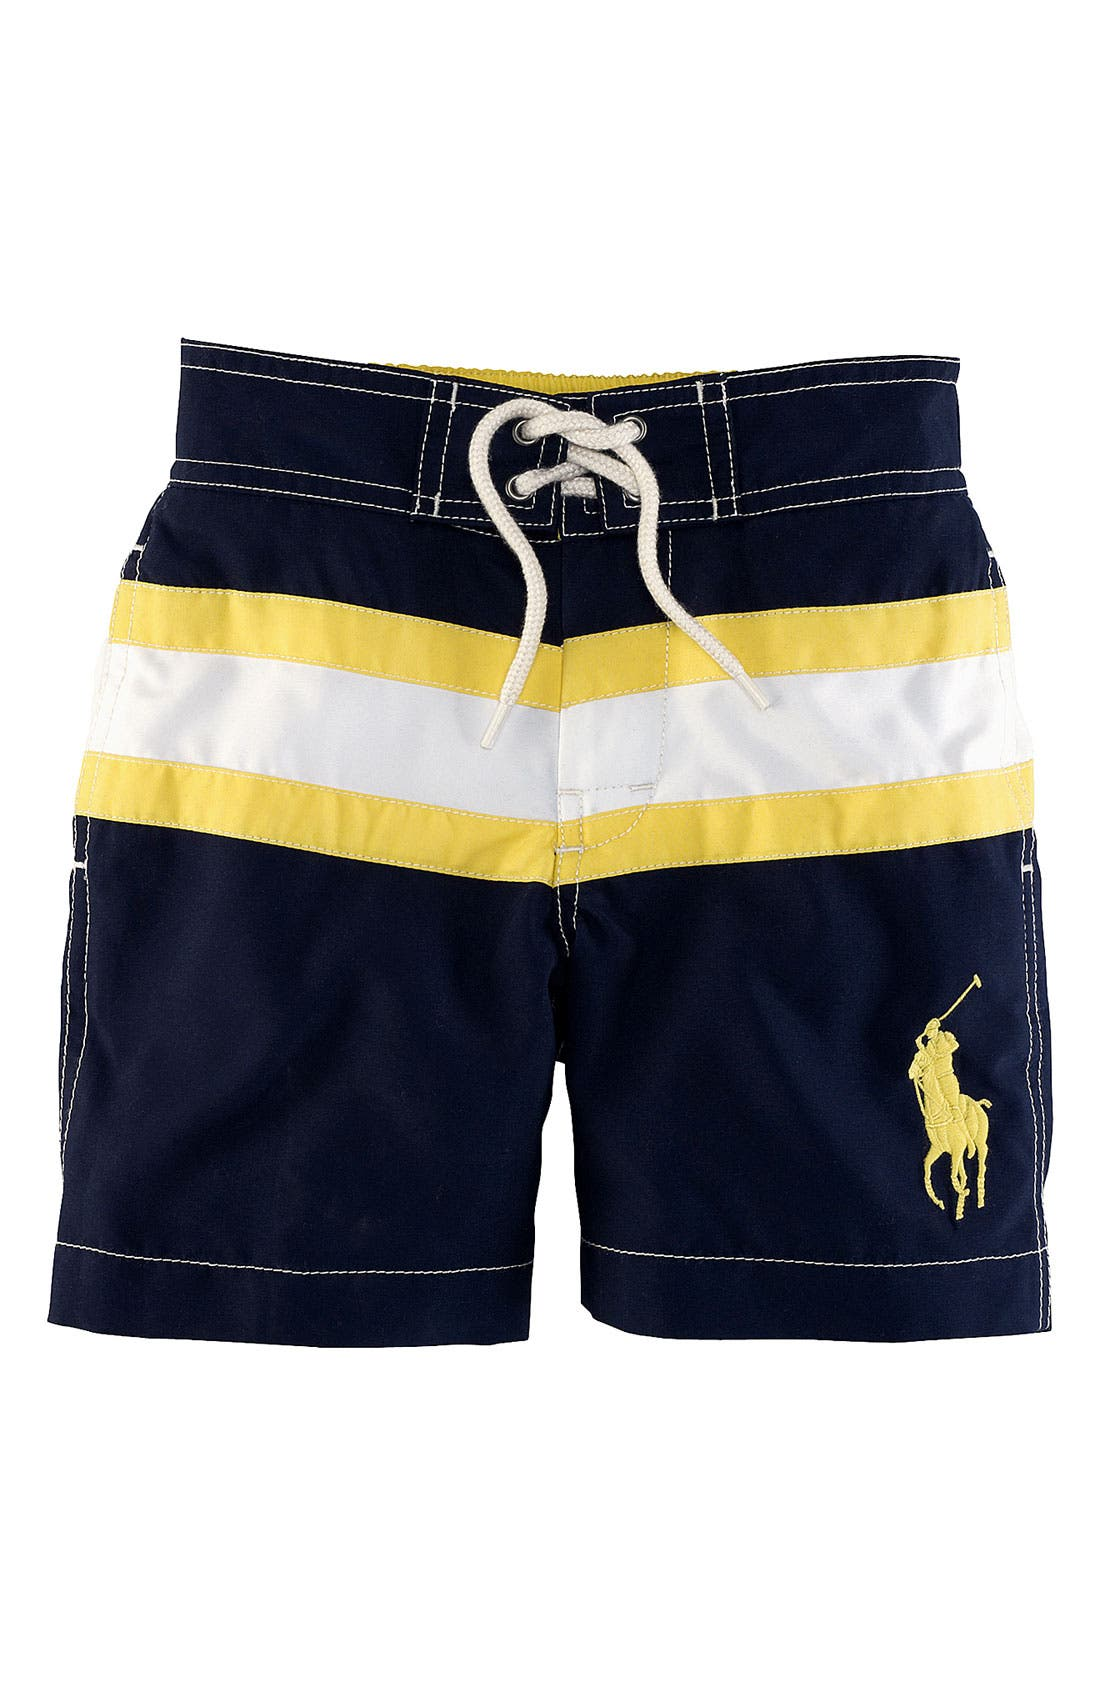 Main Image - Ralph Lauren Swim Trunks (Toddler)